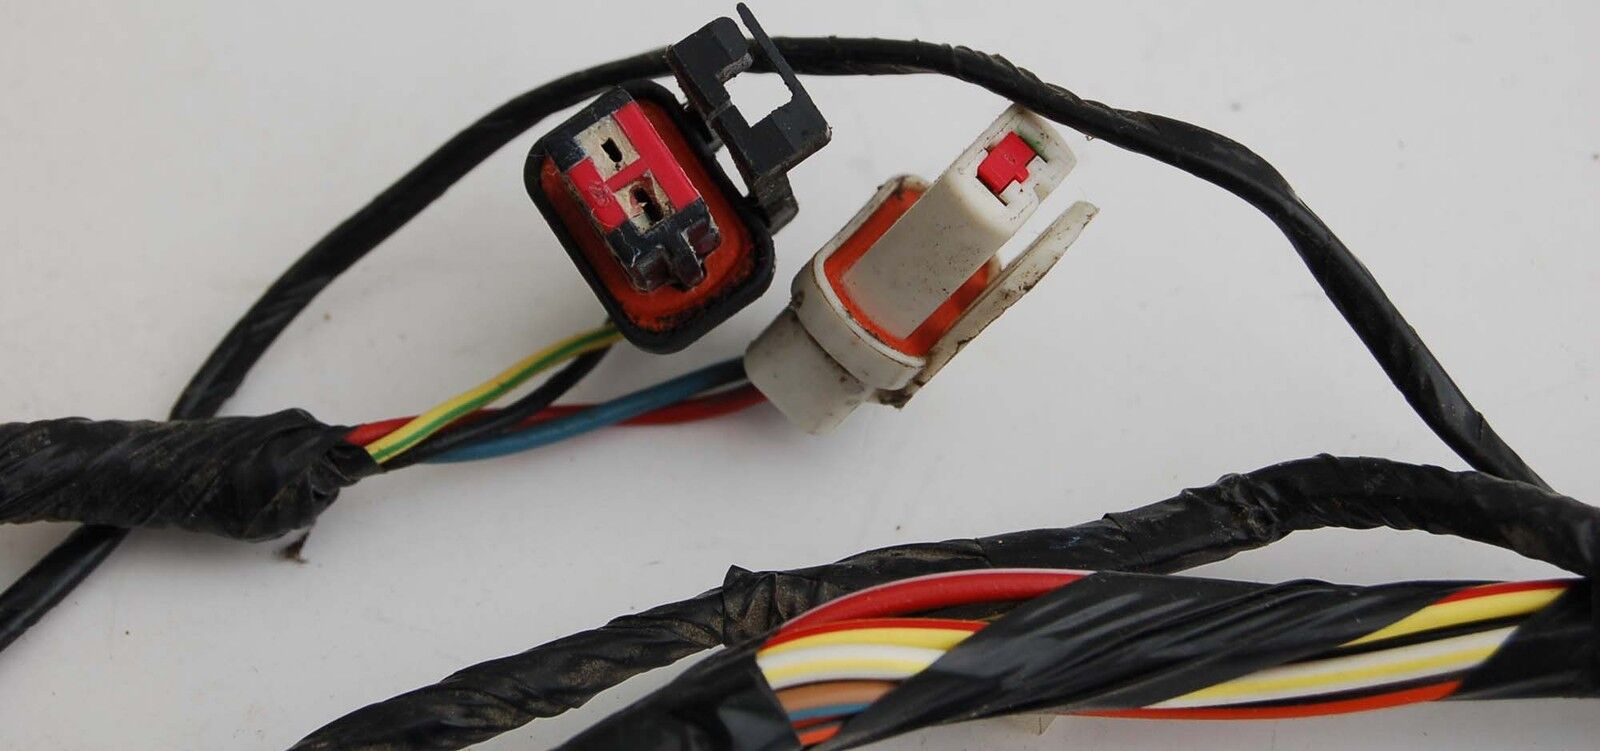 Used Ford Windstar Electric Vehicle Parts for Sale  Ford Windstar Wiring Harness on